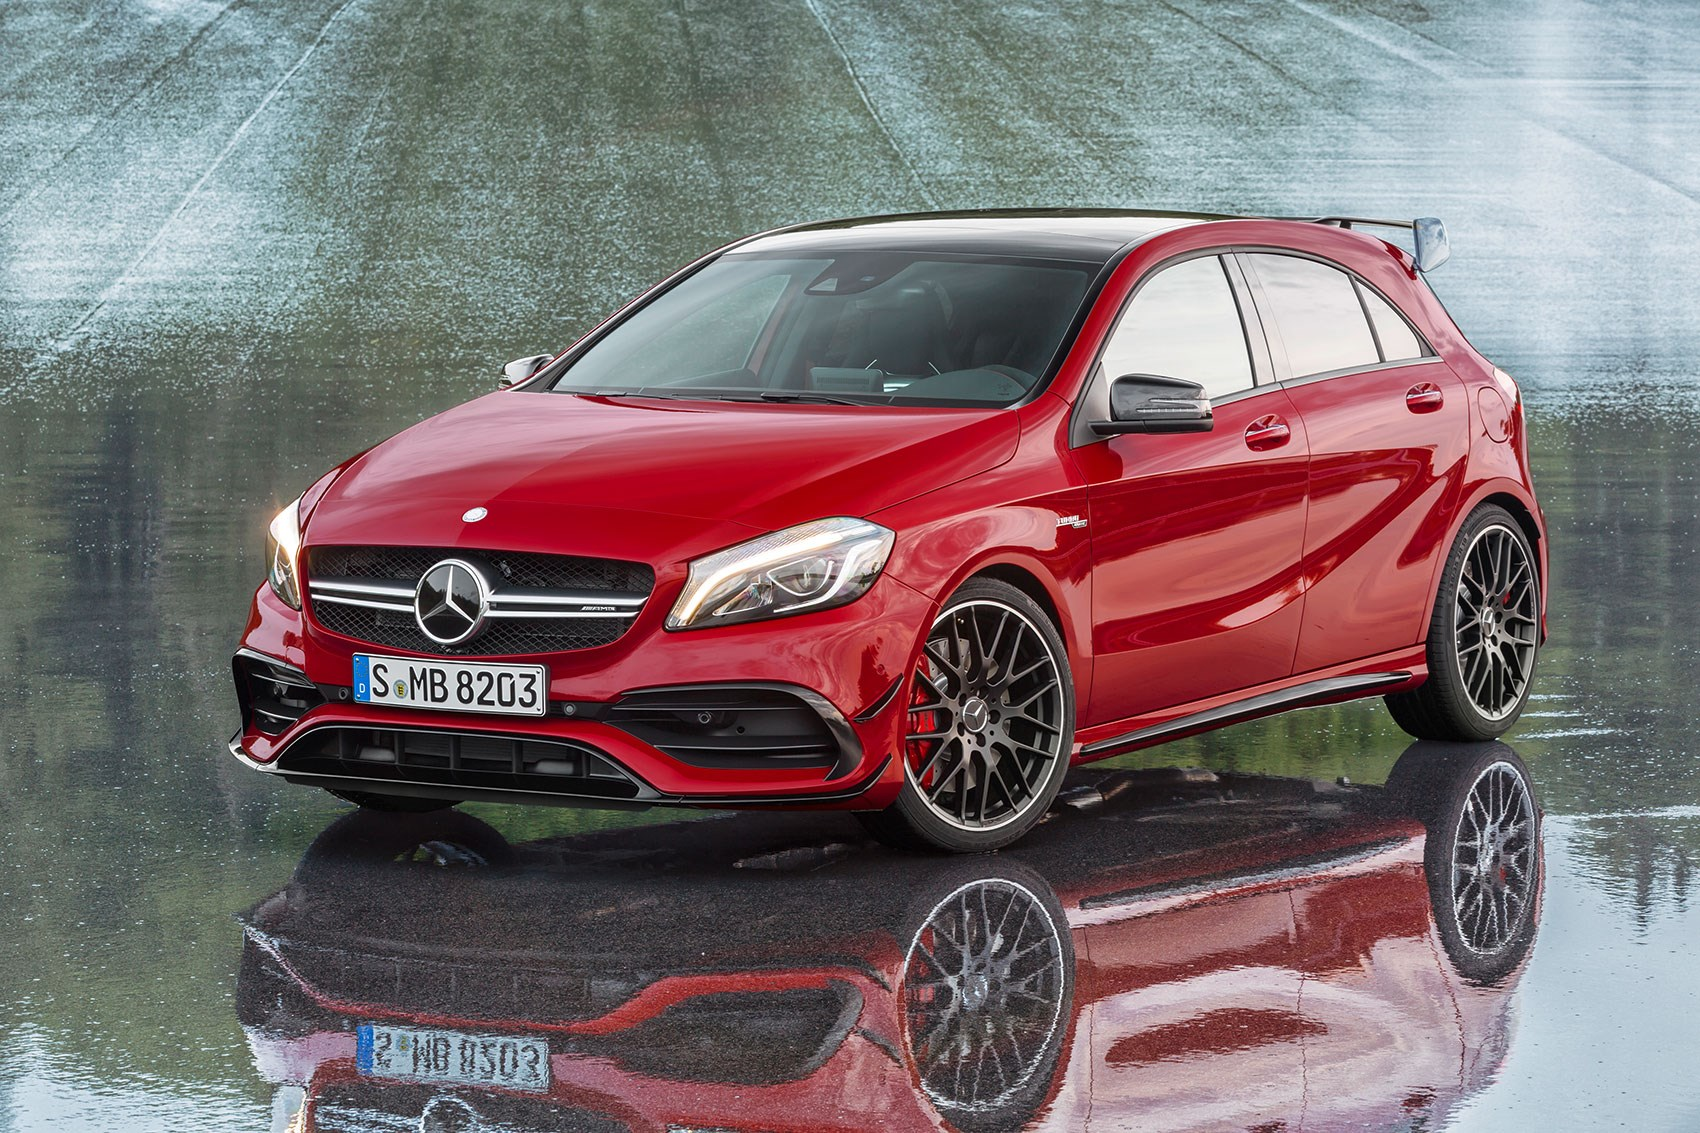 Mercedes A45 AMG muscles up to 381bhp in 2016 A-class